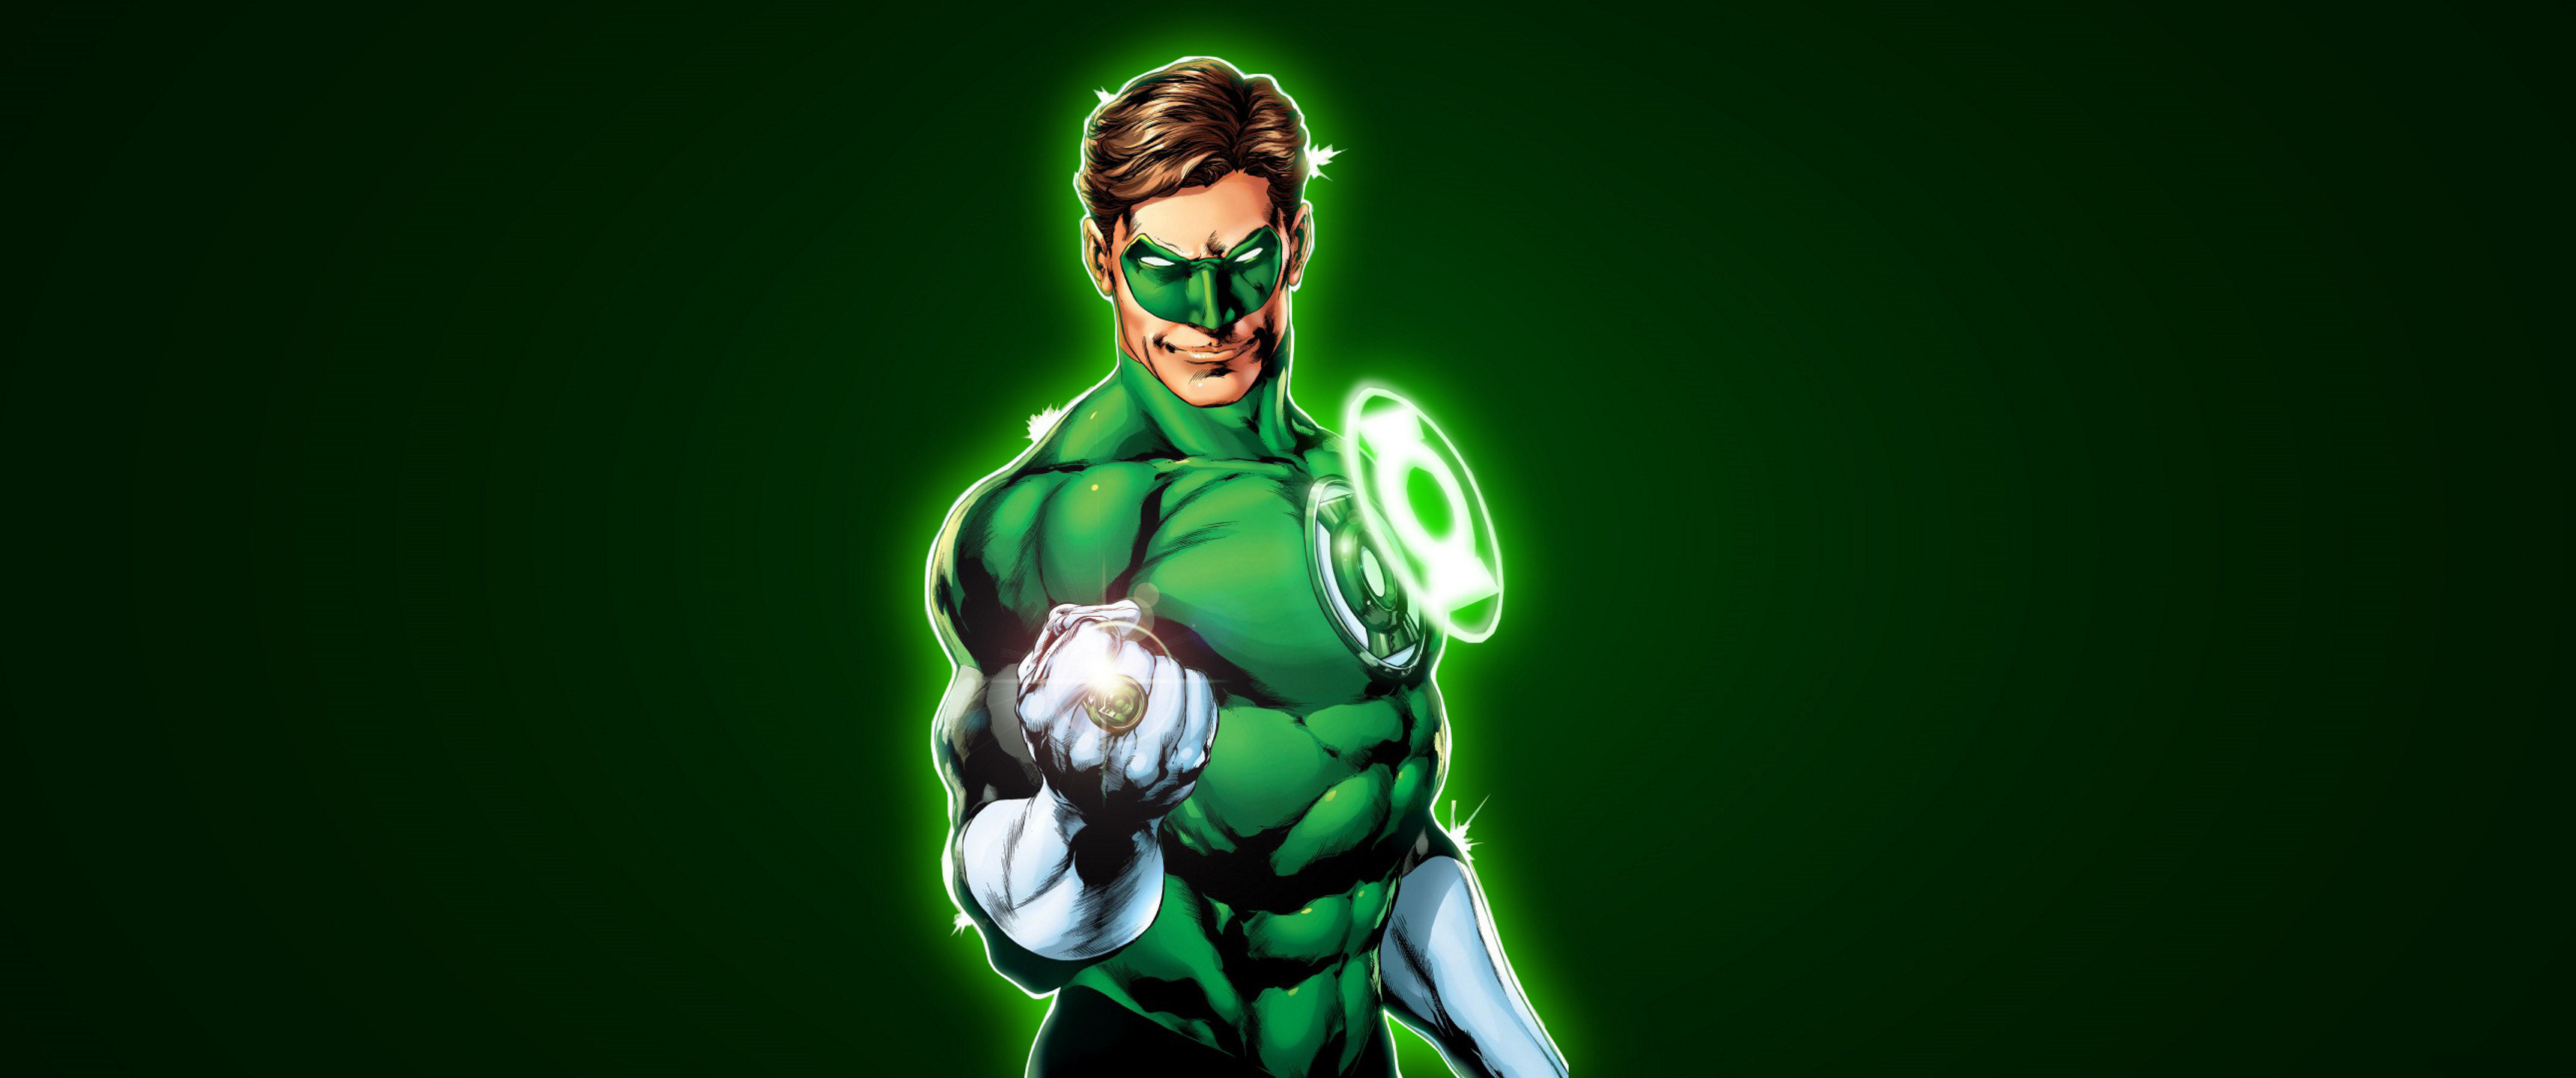 High resolution Green Lantern Corps hd 3440x1440 wallpaper ID:277415 for PC